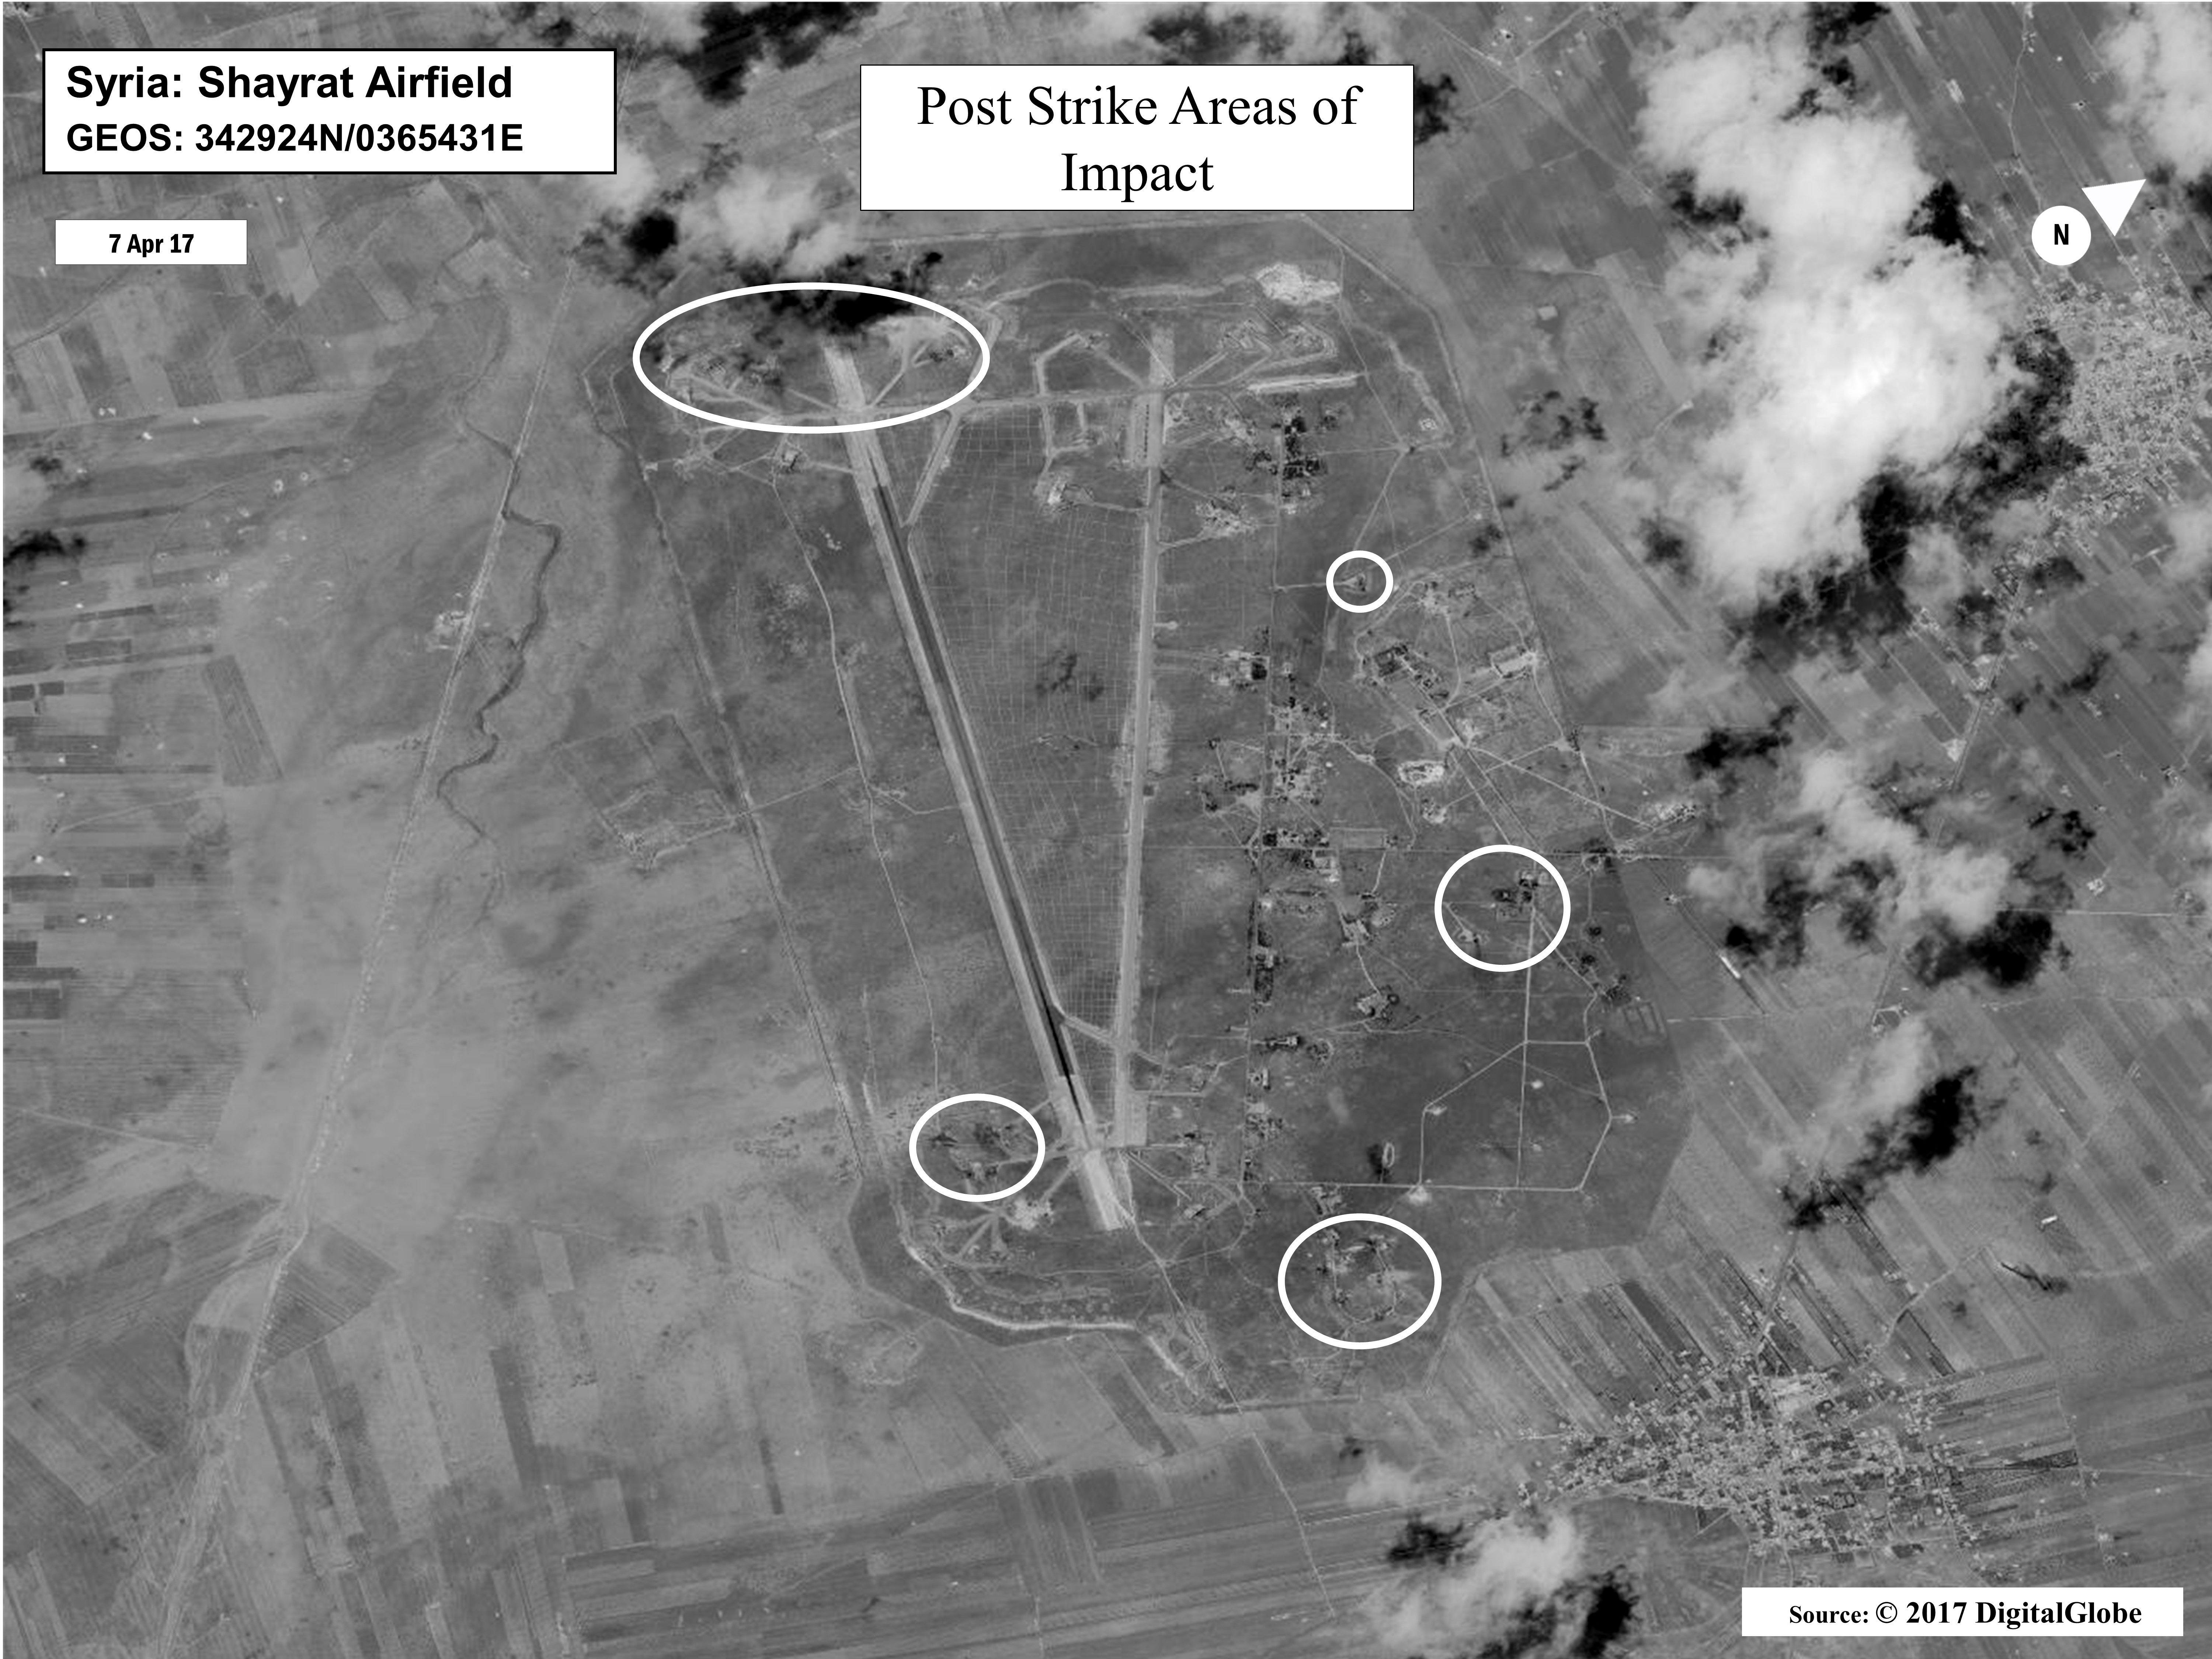 This satellite image released by the U.S. Department of Defense shows a damage assessment image of Al-Shayrat airbase in Syria, following U.S. Tomahawk Land Attack Missile strikes on Friday, April 7, 2017 from the USS Ross (DDG 71) and USS Porter (DDG 78), Arleigh Burke-class guided-missile destroyers.